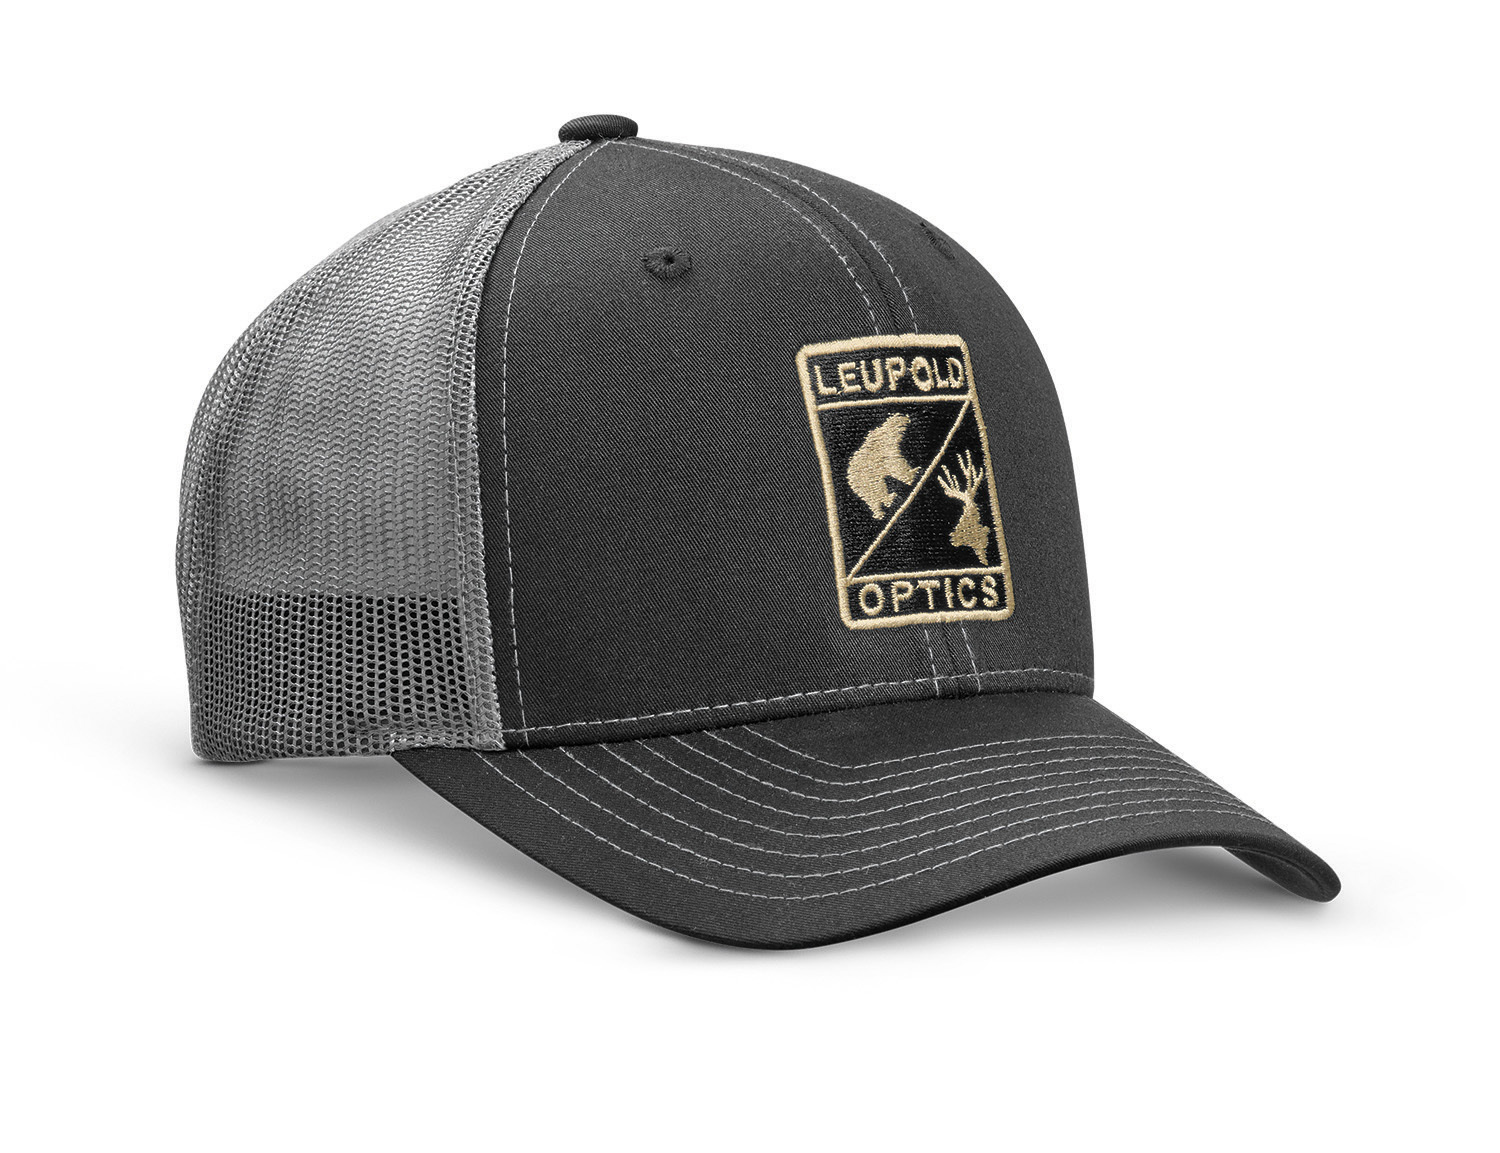 304ba096d L Optic Trucker Hat Black / Charcoal - Sku #170580 - Size: oneSize - L  Optic Trucker Hat Black / Charcoal